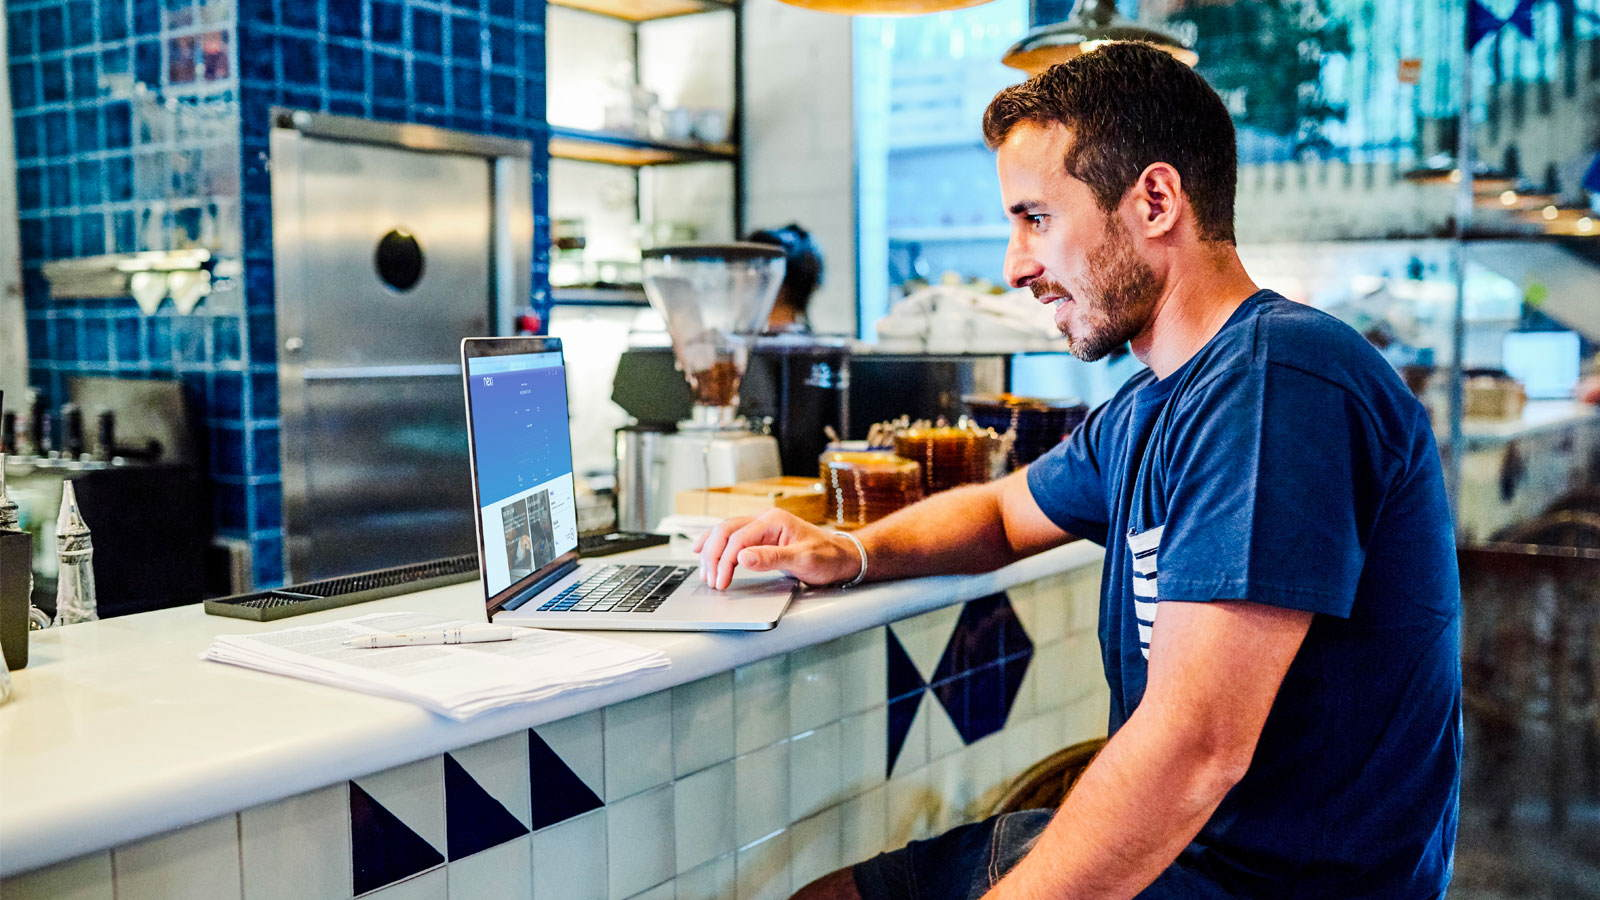 Man working on laptop in coffee shop